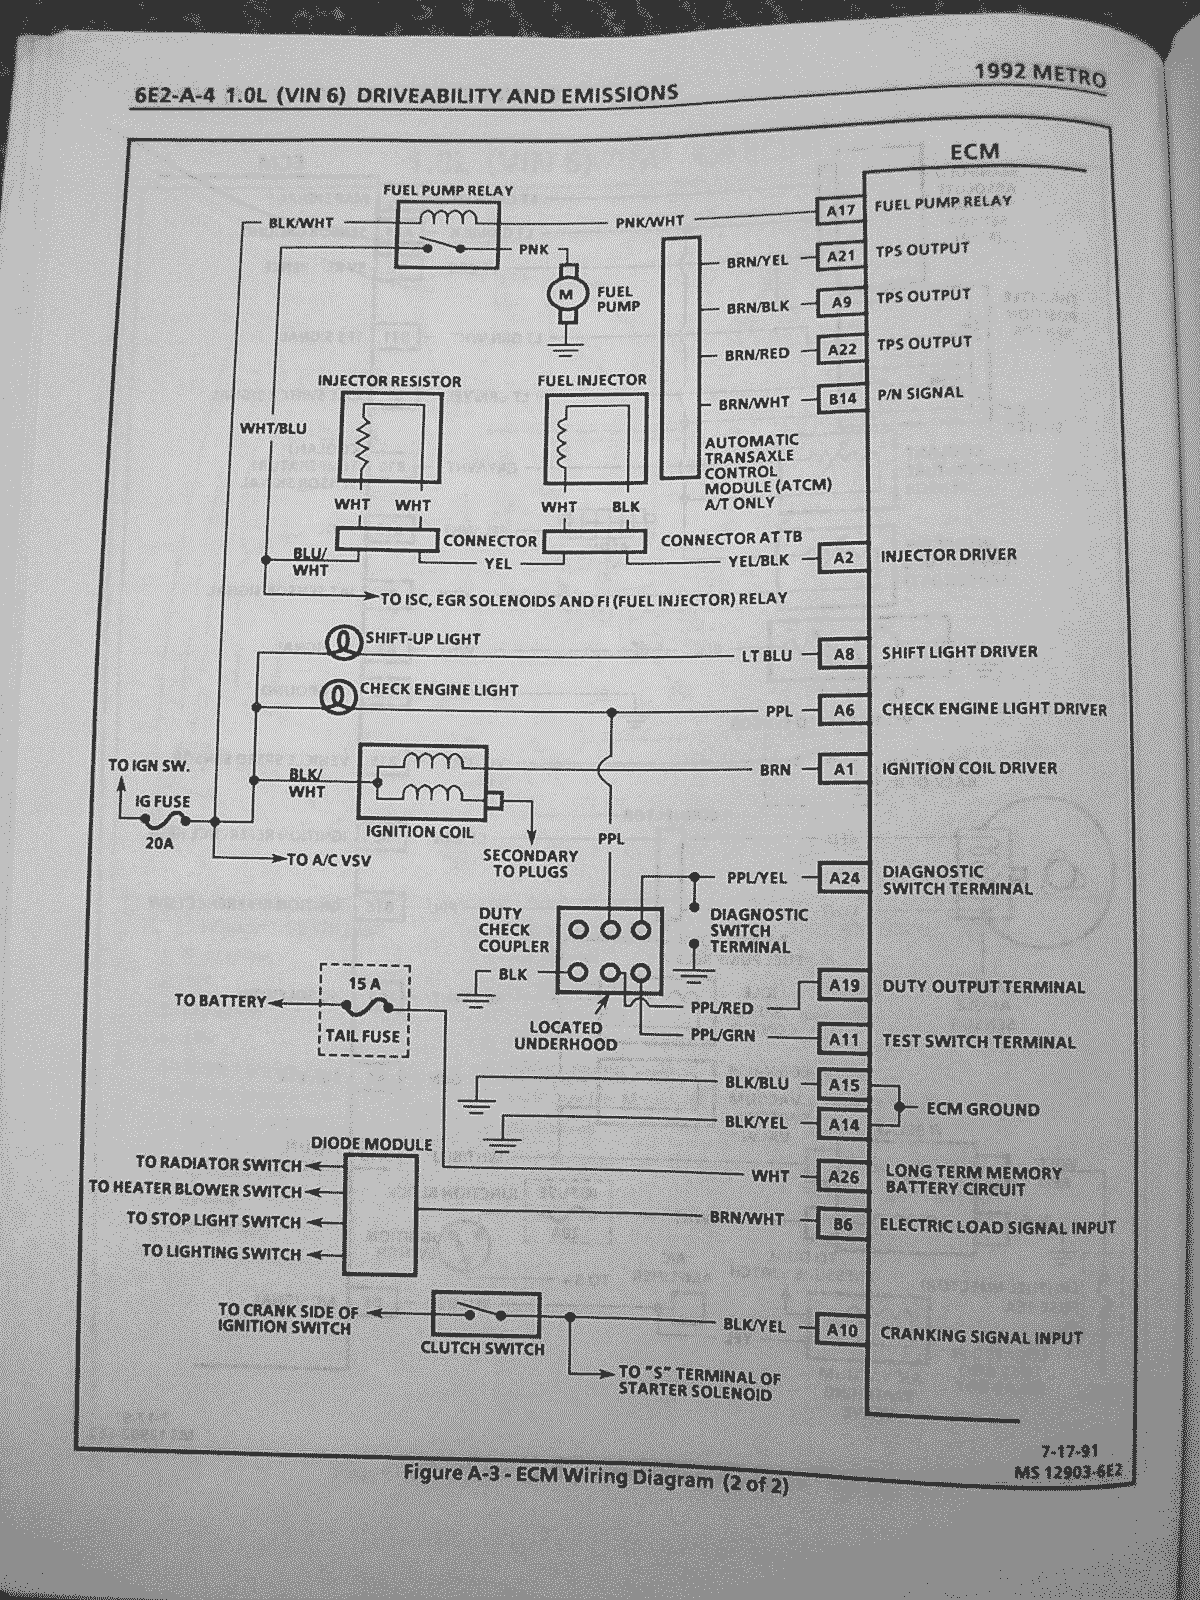 6e2 a 4 geo metro and suzuki swift wiring diagrams metroxfi com suzuki swift 2007 fuse box diagram at aneh.co